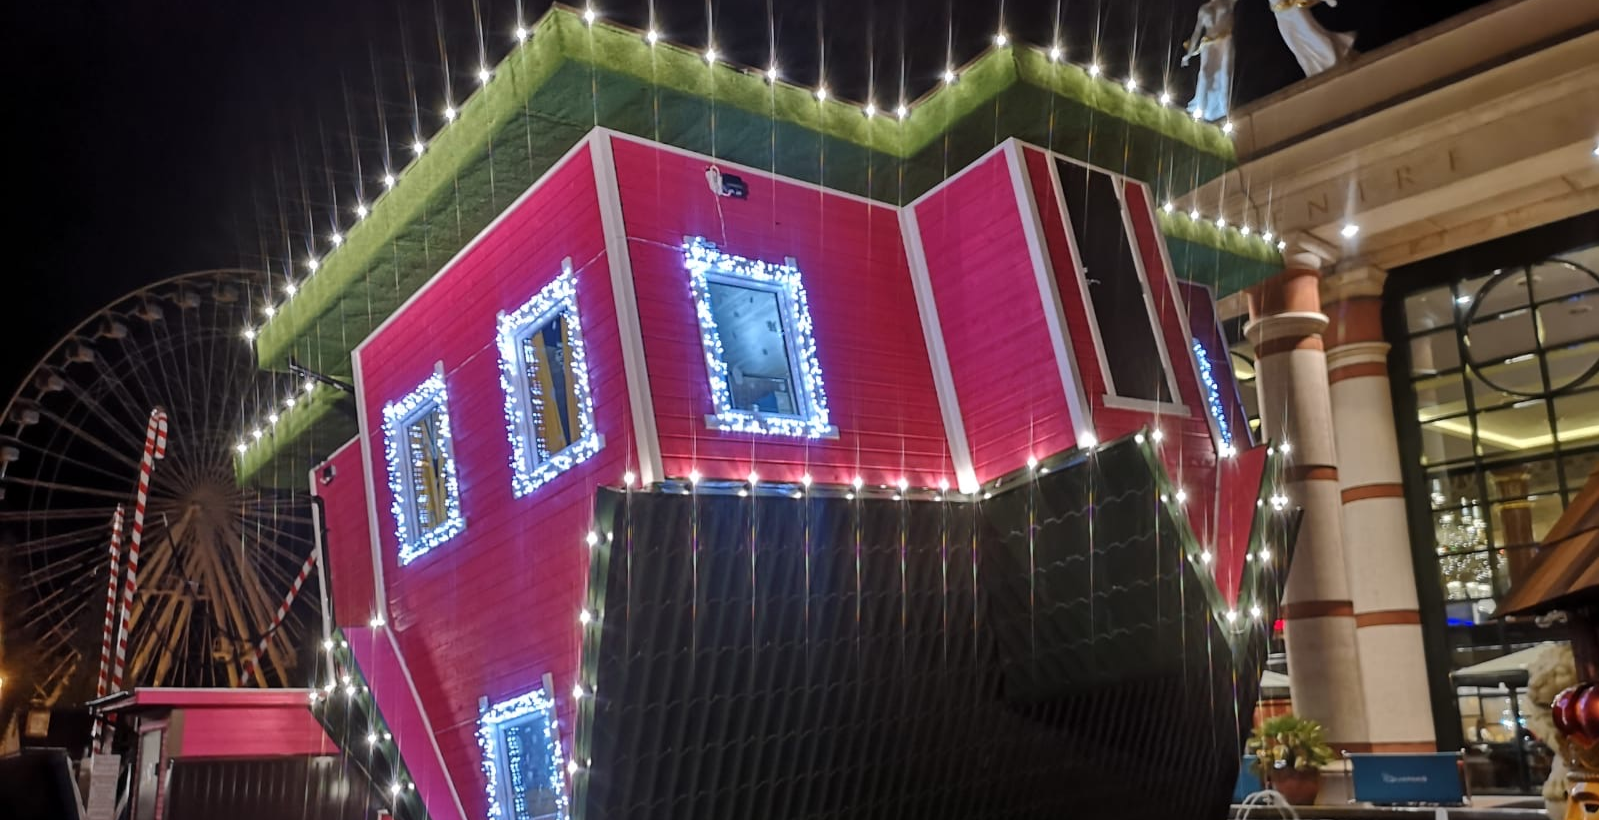 Upside Down House - intu Trafford Centre